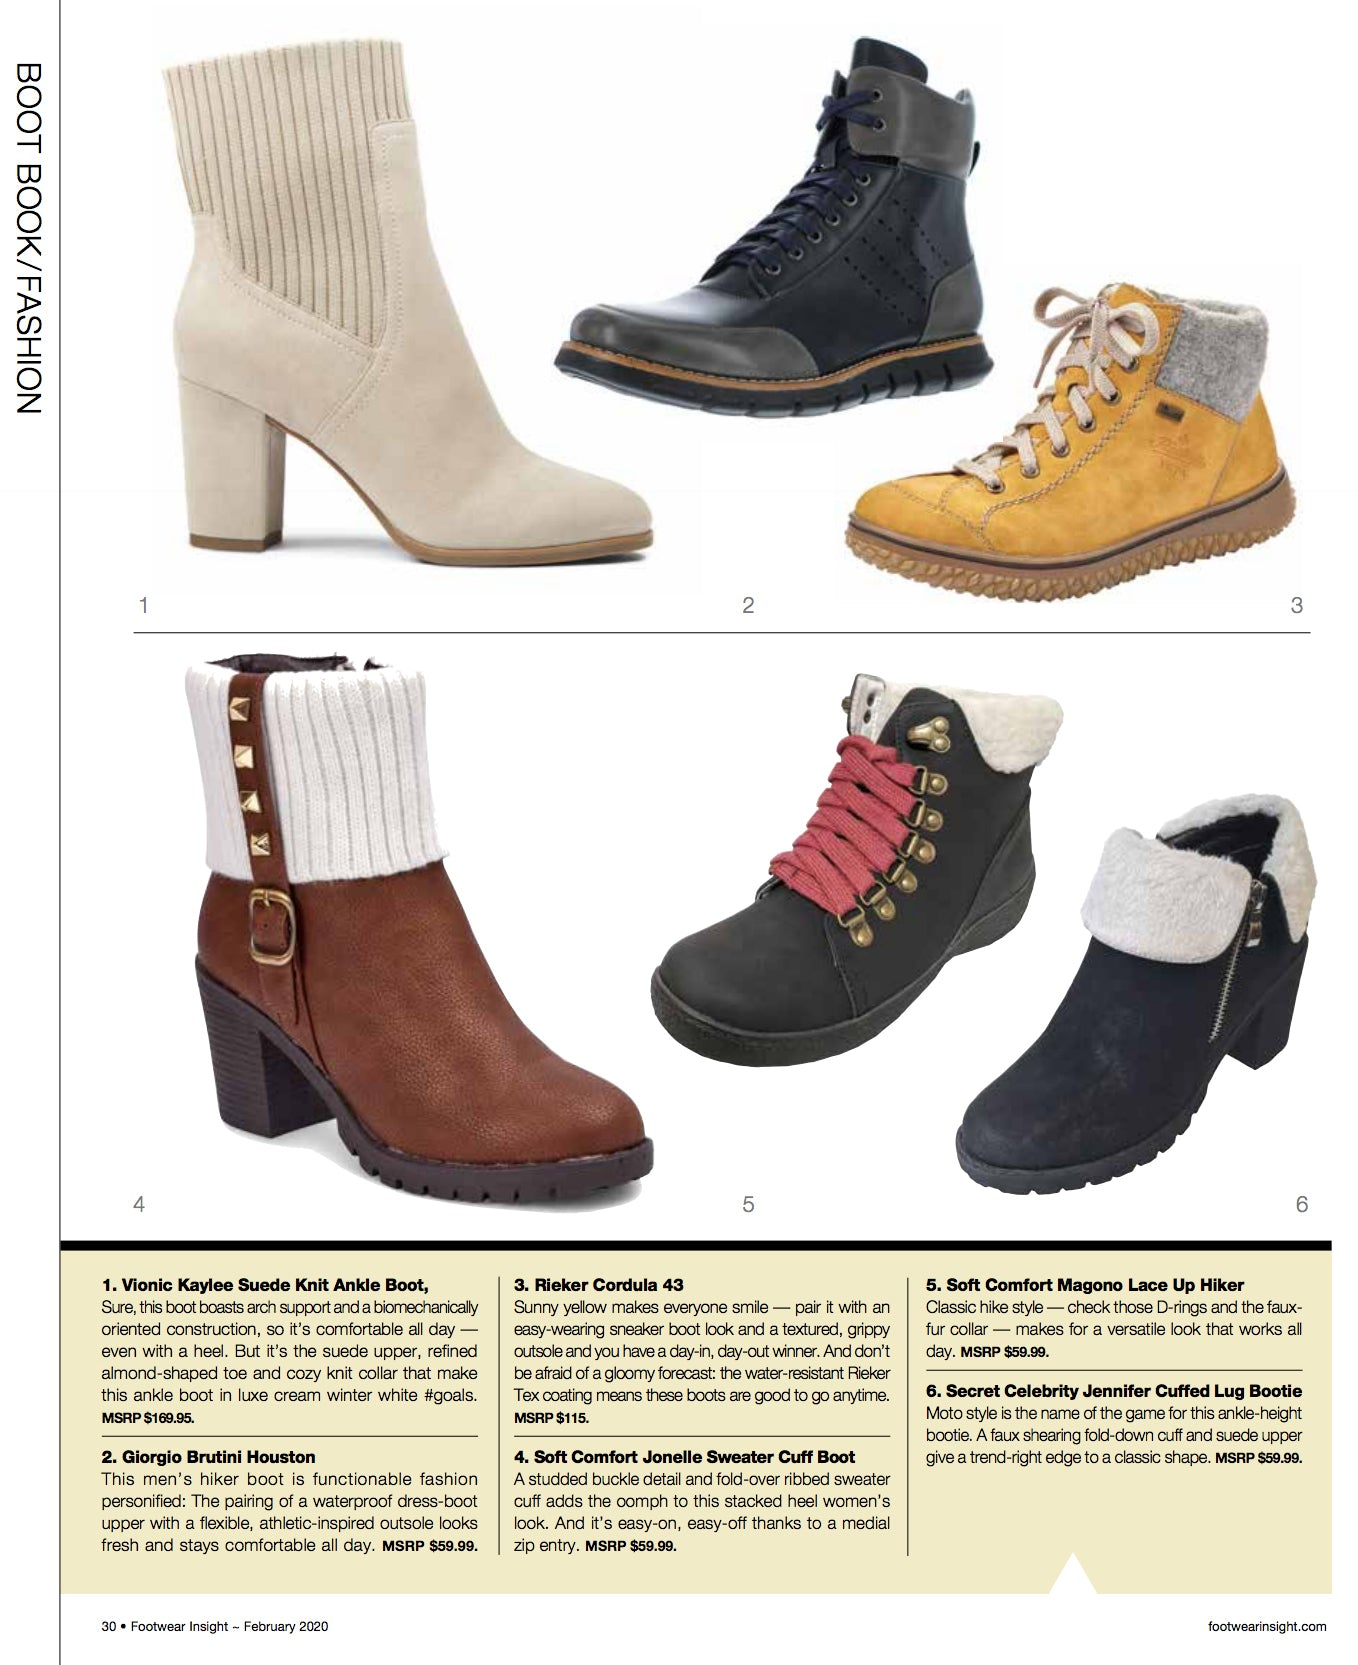 Footwear Insight Feb 2020